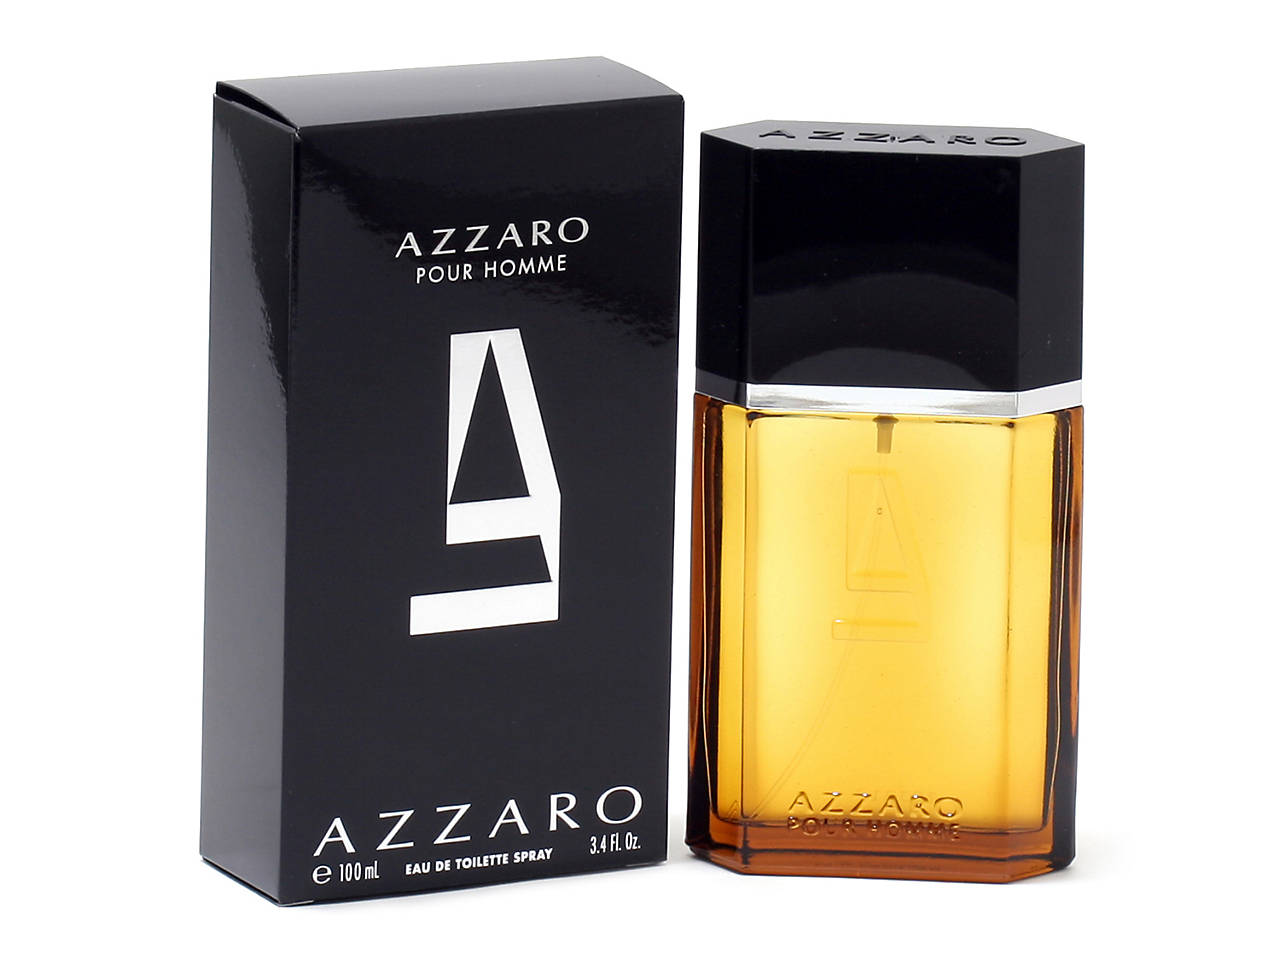 Azzaro Fragrance Azzaro Pour Homme Eau De Toilette Spray Mens